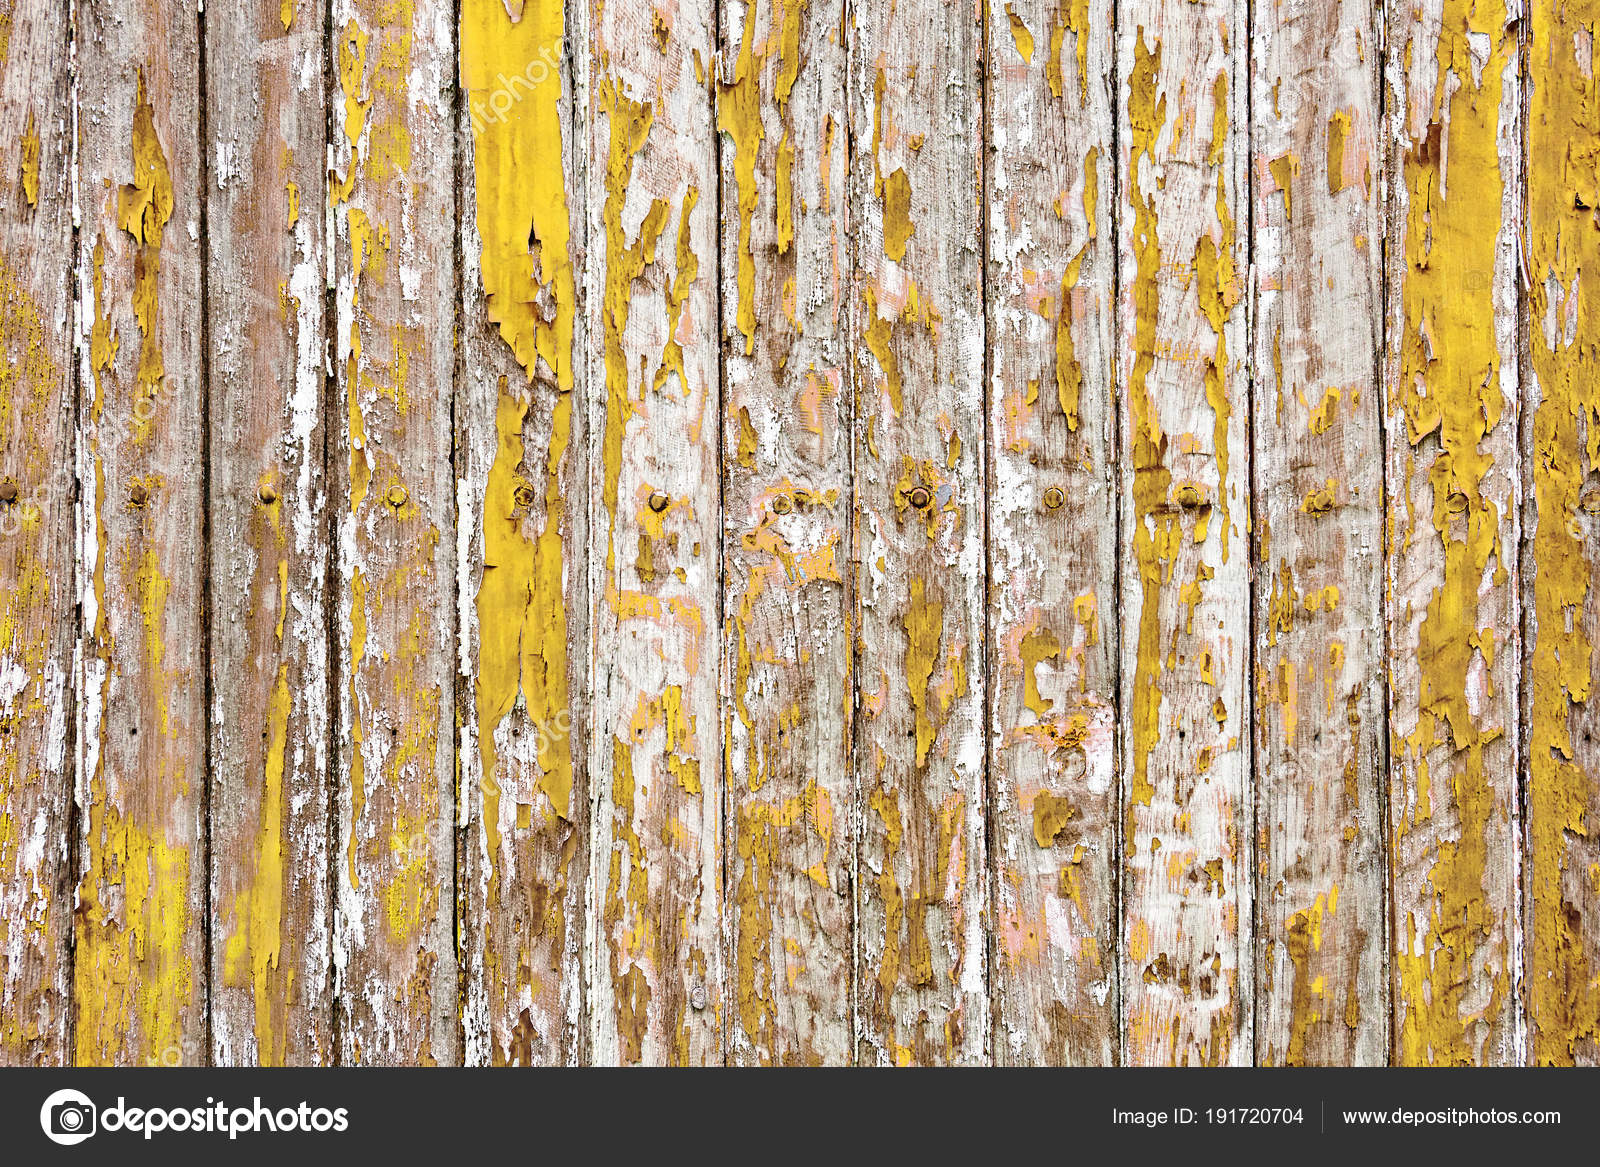 The Old Wooden Wall Painted With Yellow Color Cracking Peeling And Revealed Spike Nail Rustic Wood Texture Photo By Mrseksan